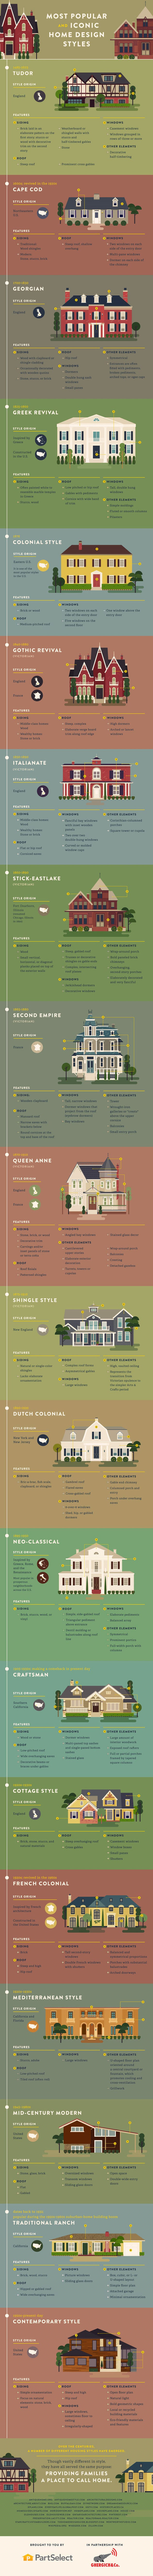 Quickly Learn the Differences Between Most Home Design Styles With This Chart